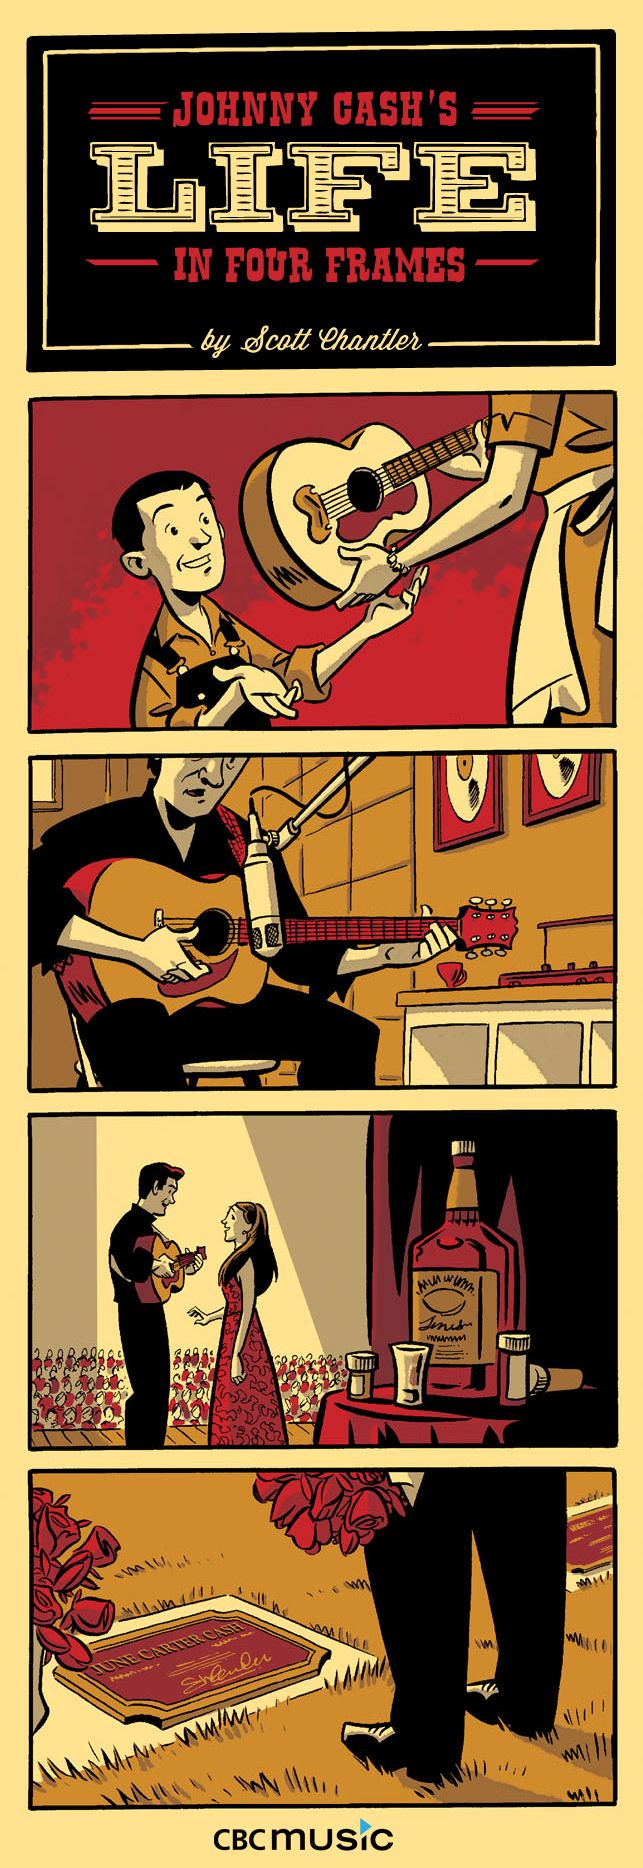 Johnny Cash's Life In Four Frames